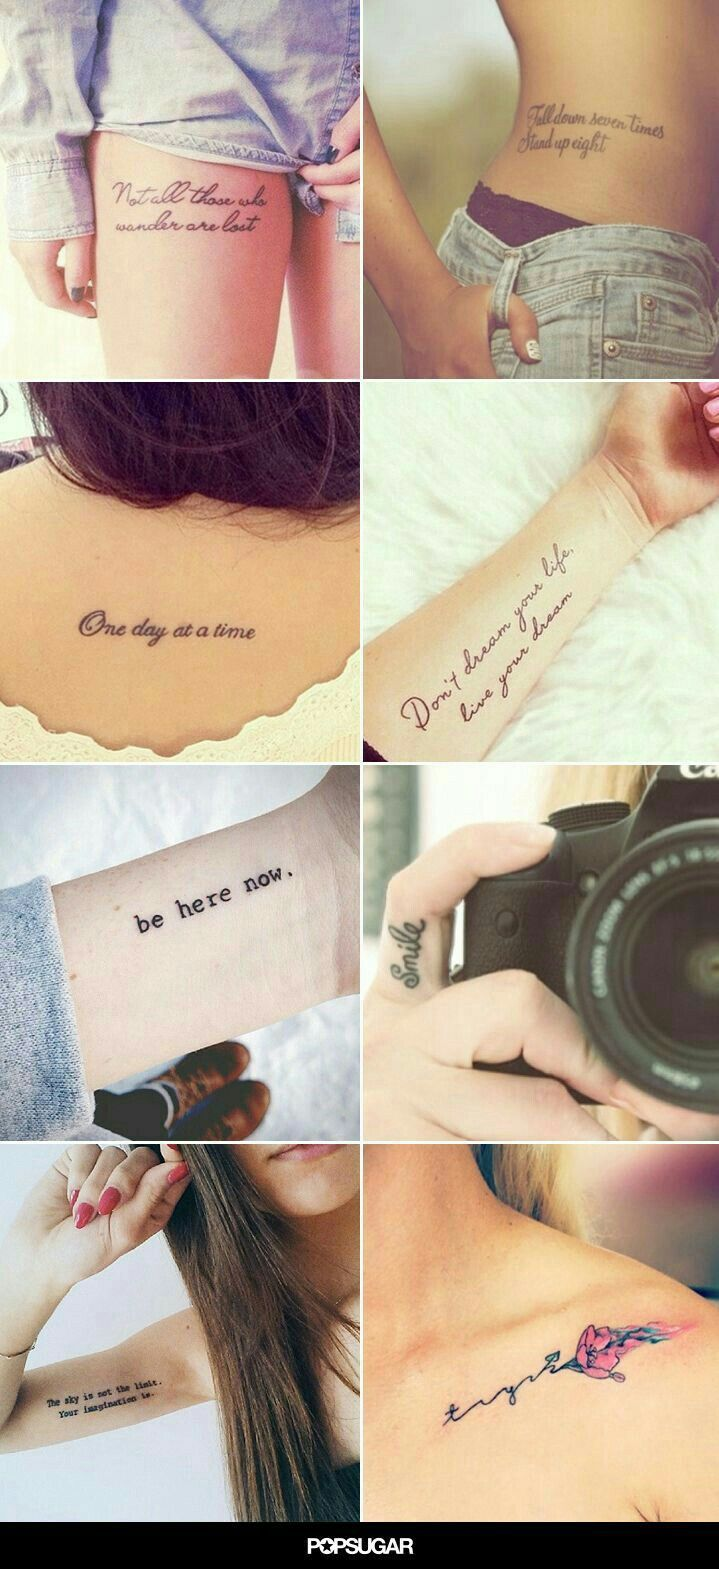 Word tattoo cover up ideas  best tattoo images on pinterest  tattoo ideas small tattoos and